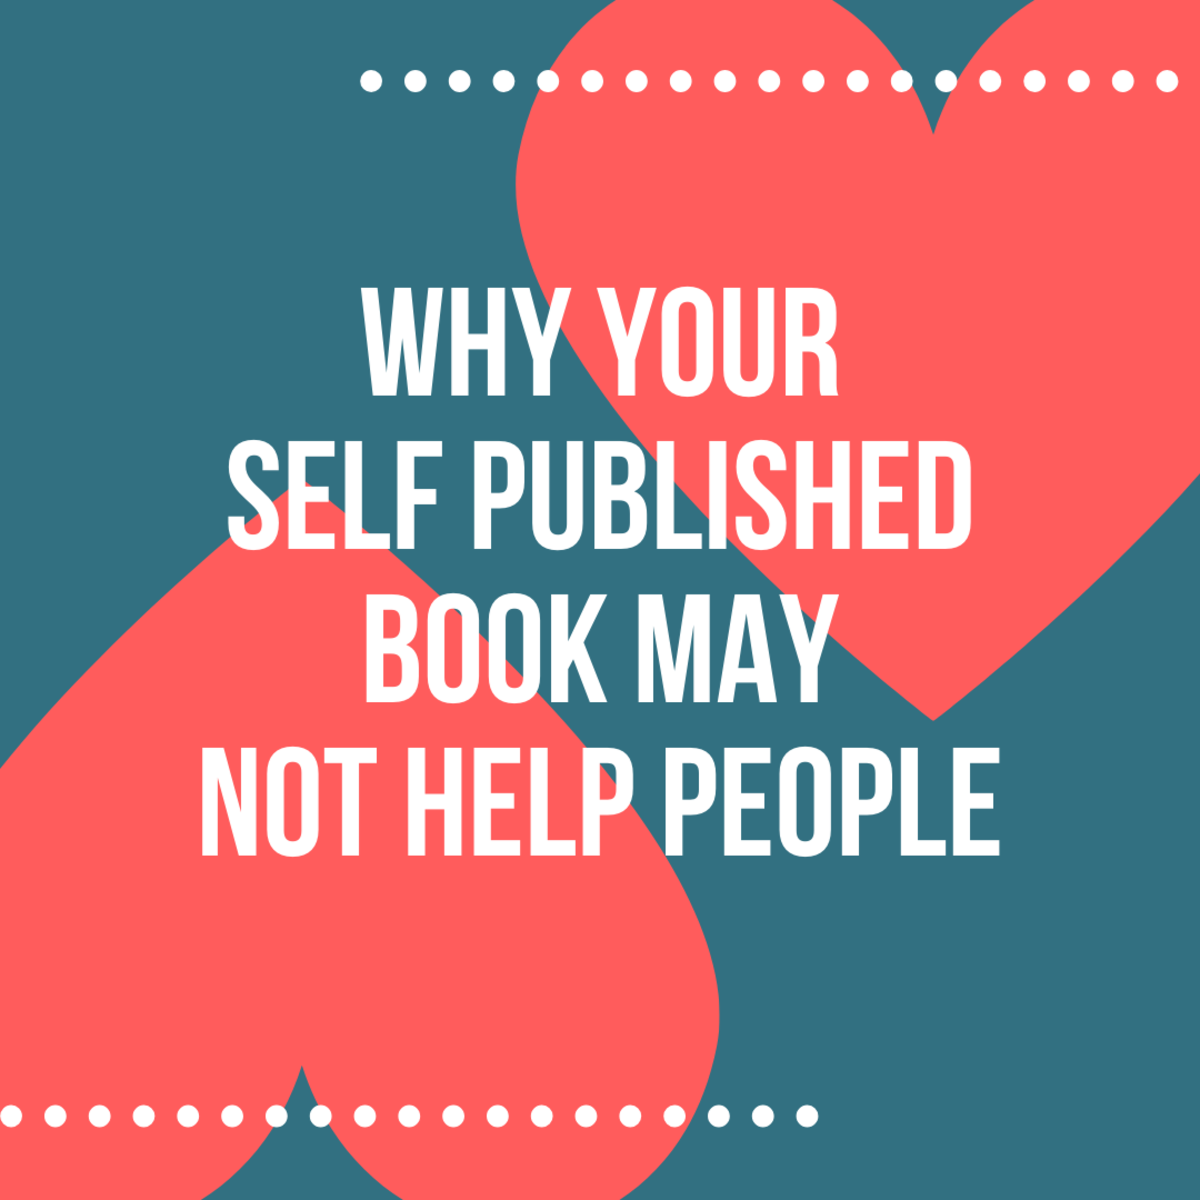 Self publishing a book is great. Helping people is great. But they don't always go together.